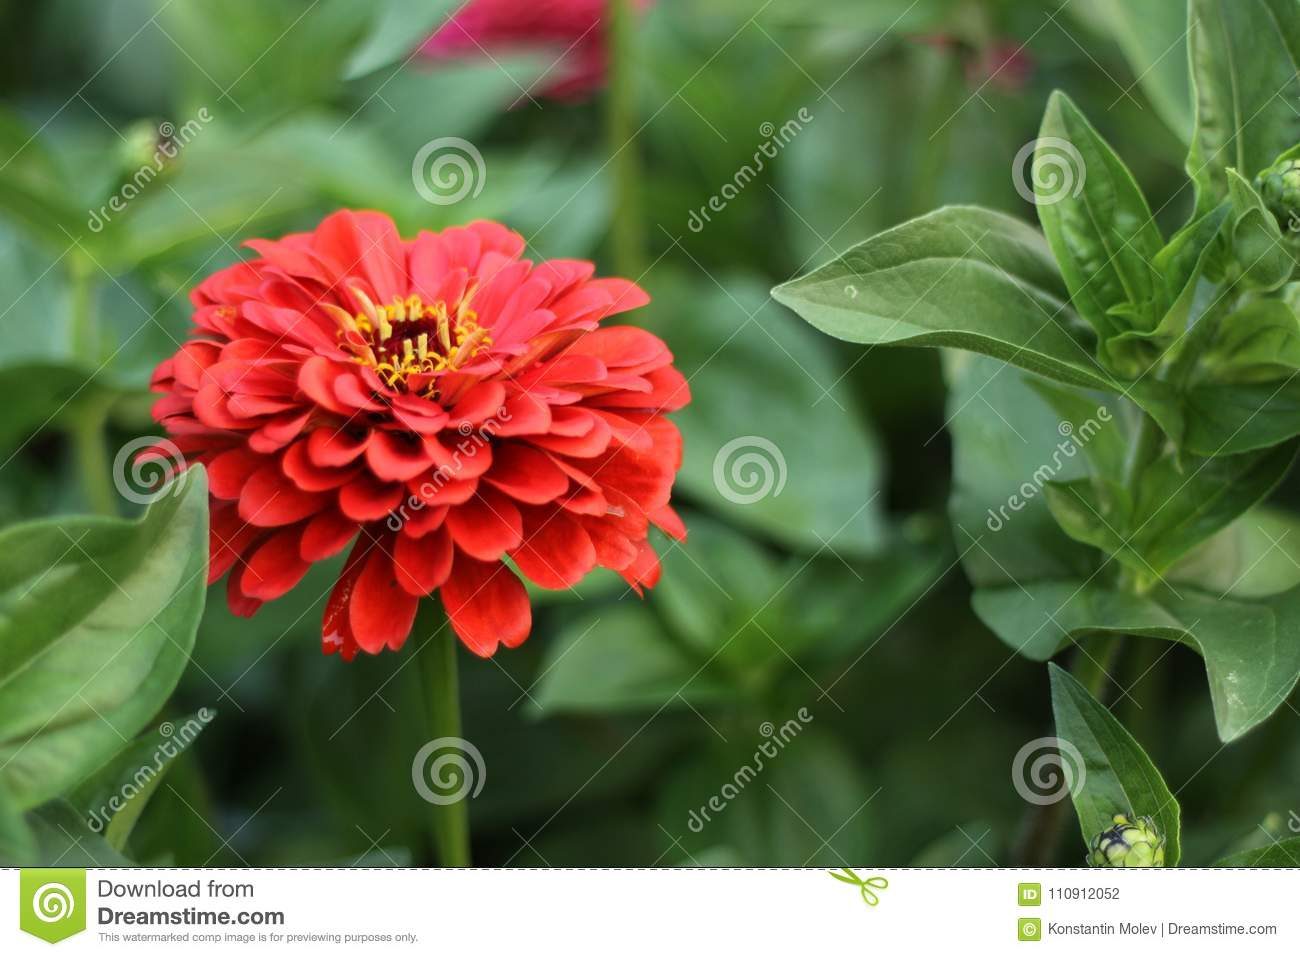 Beautiful red flower with a yellow center stock photo image of beautiful red flower with a yellow center mightylinksfo